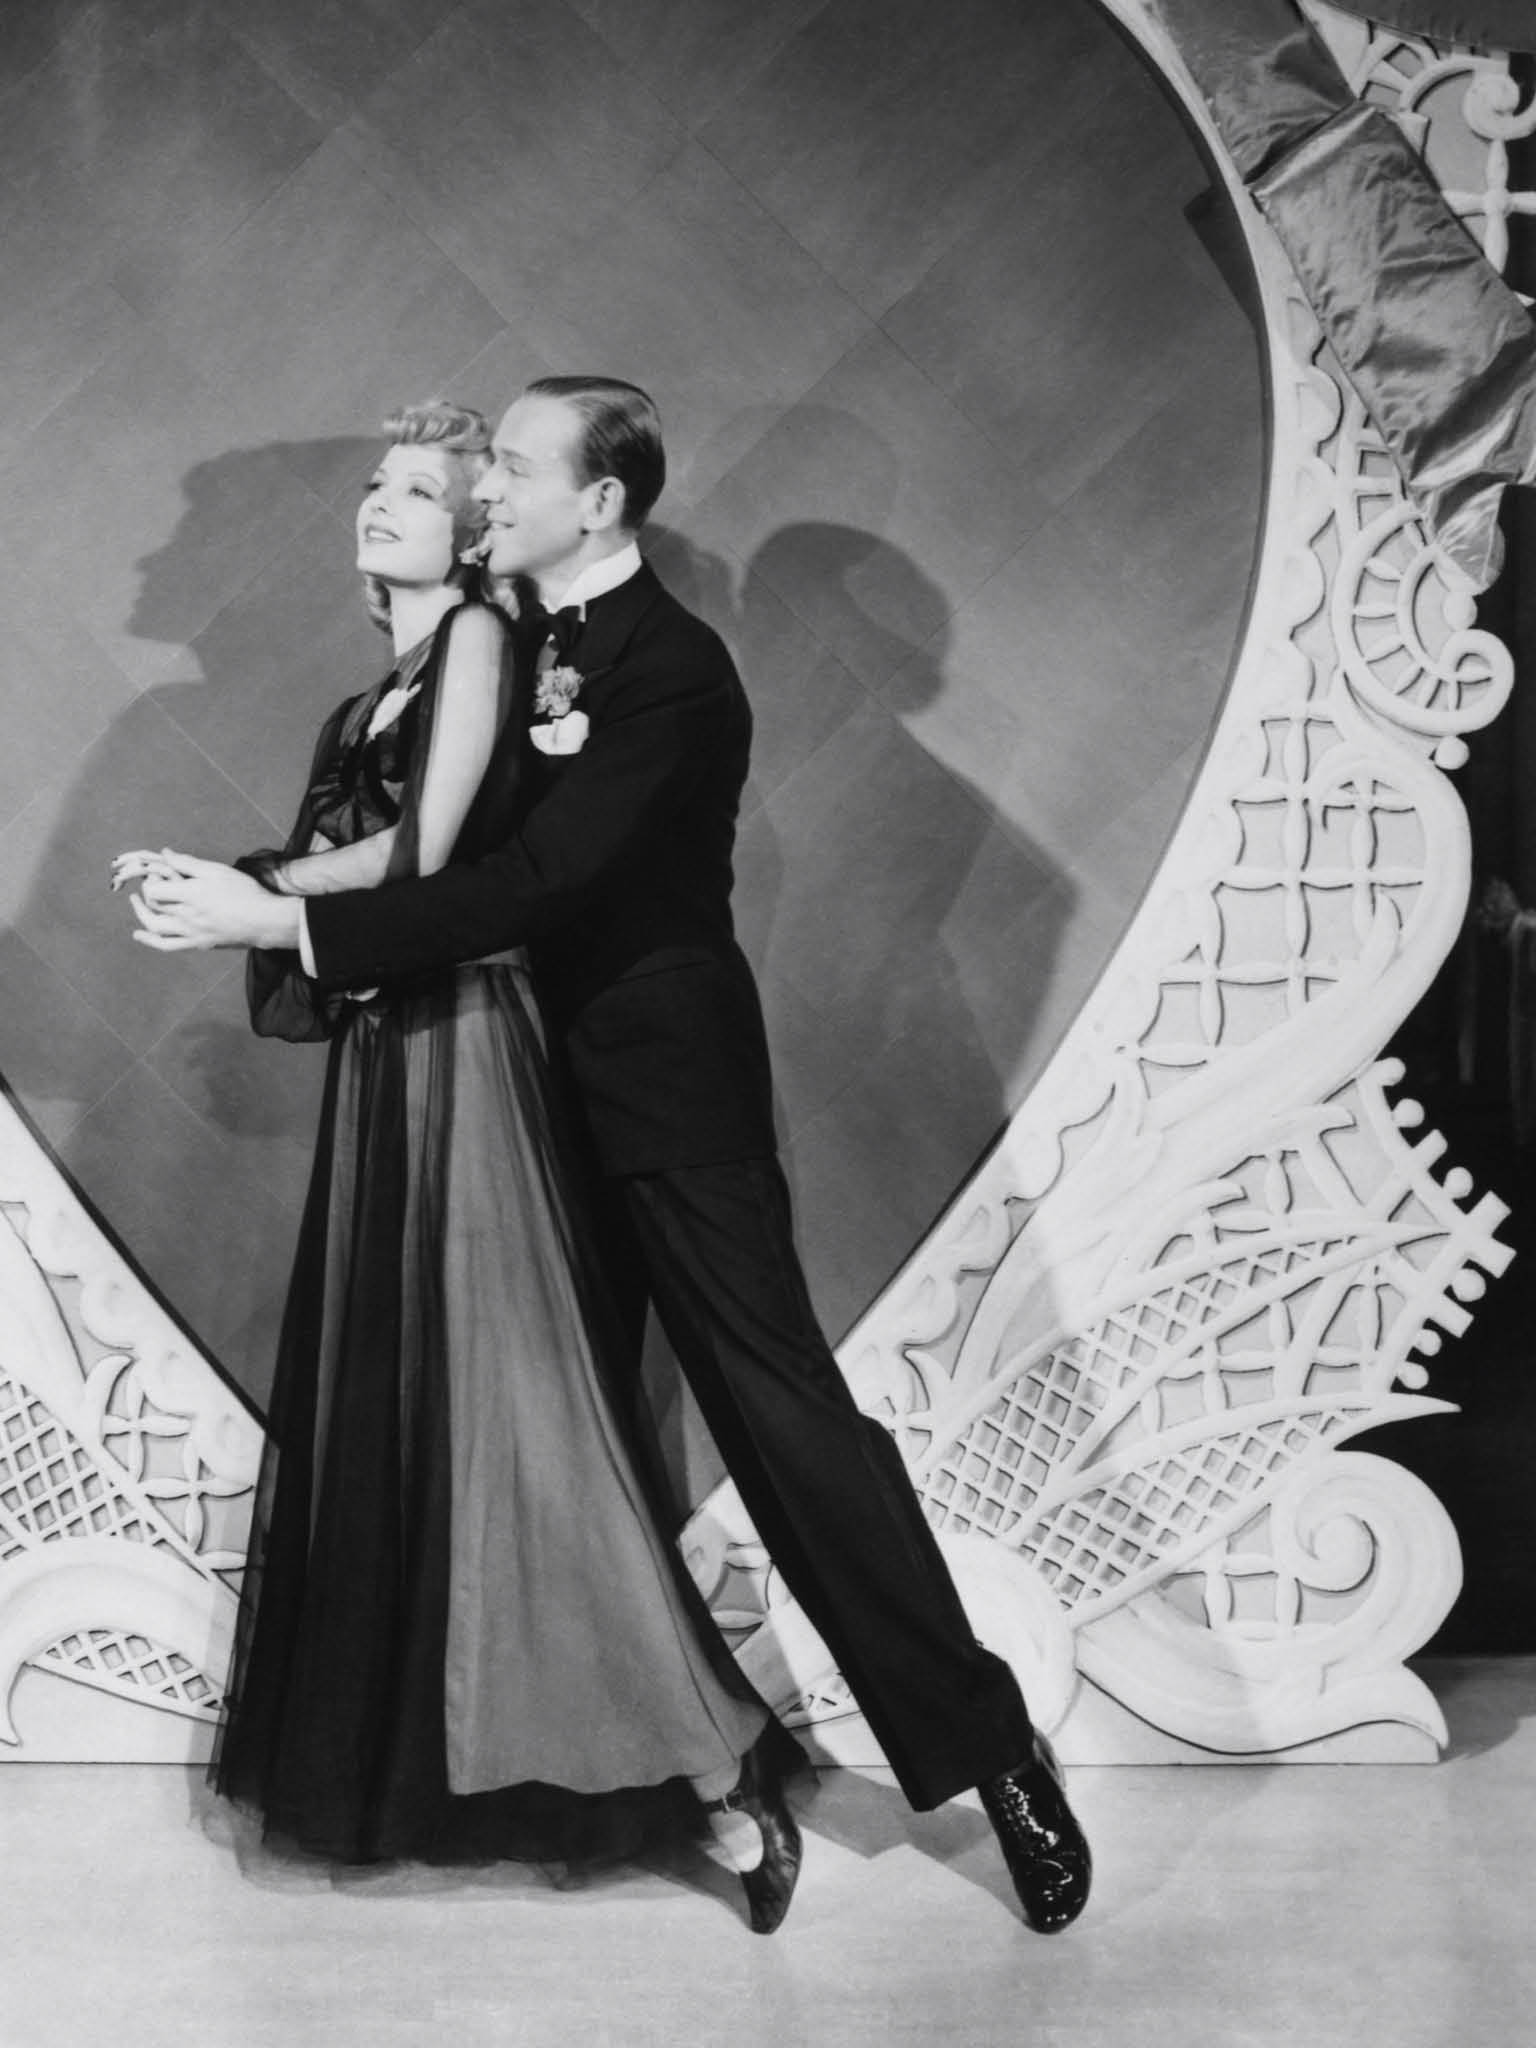 ·Original Title: HOLIDAY INN ·English Title: HOLIDAY INN ·Film Director: SANDRICH, MARK ·Year: 1942 ·Stars: ASTAIRE, FRED;REYNOLDS, MARJORIE